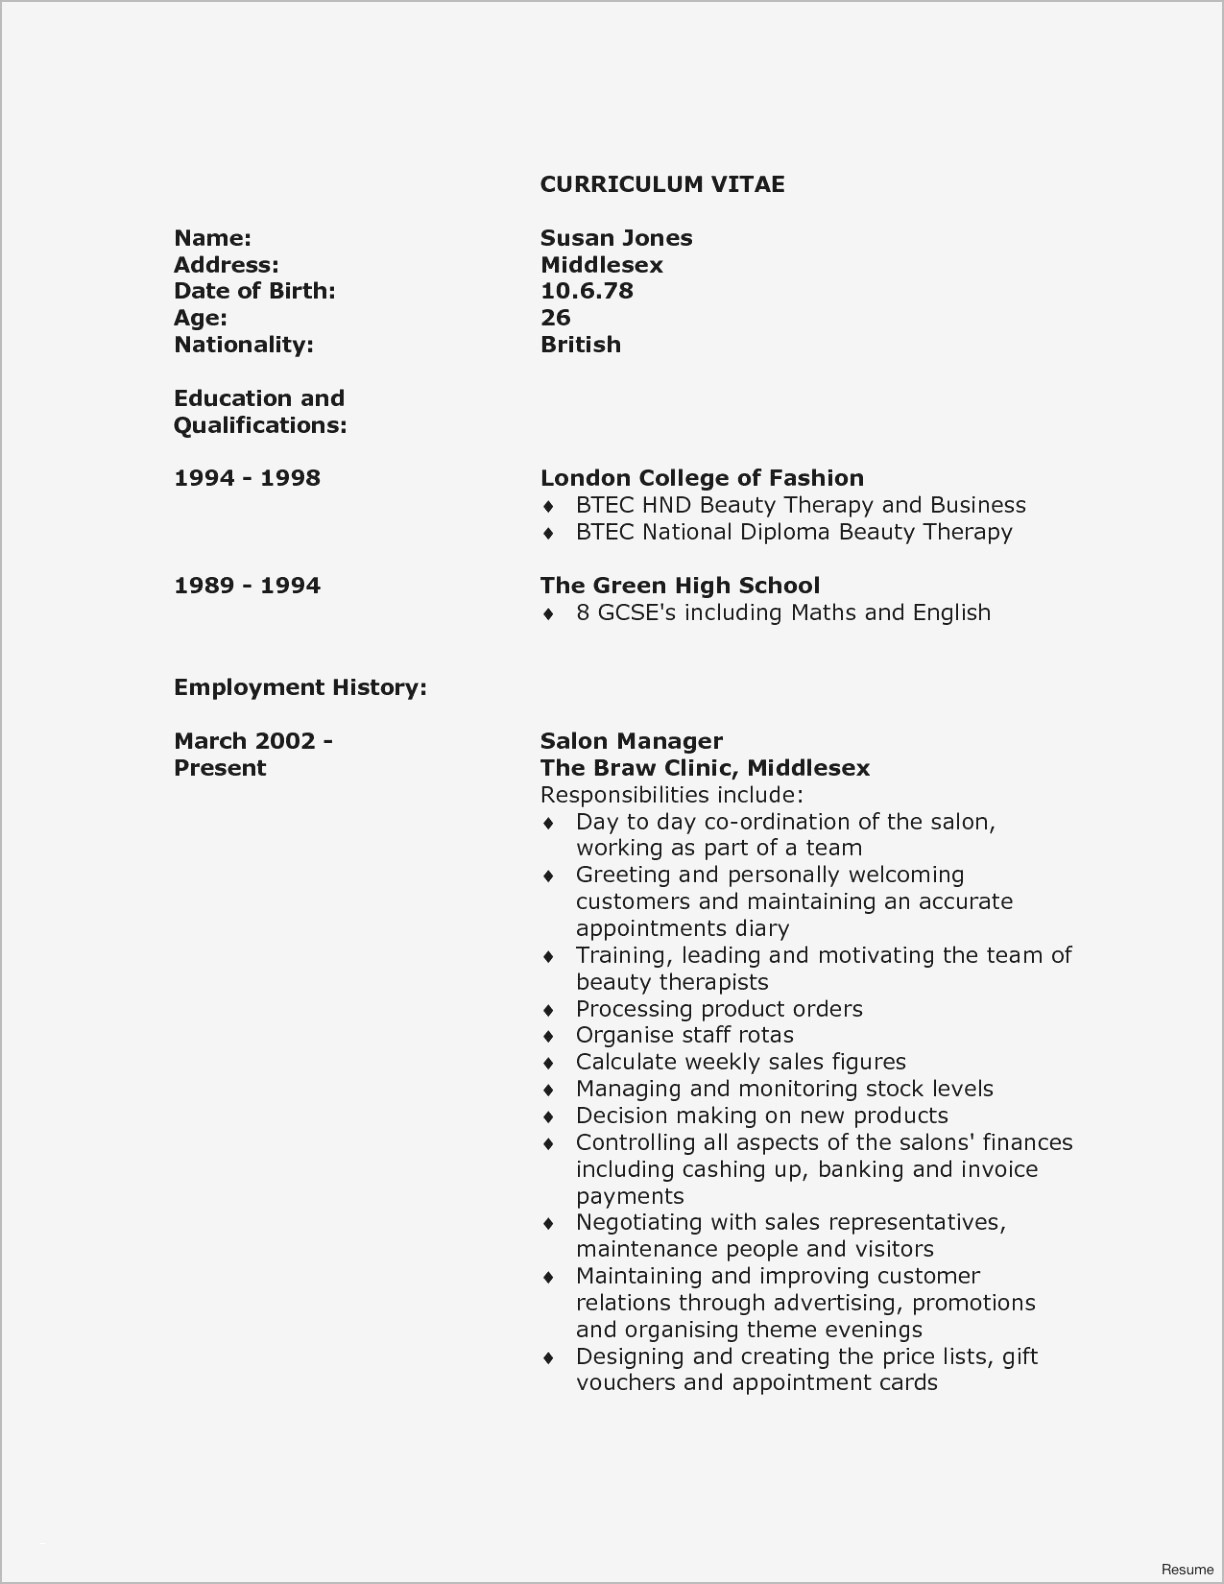 Swim Instructor Resume - How to Write A Resume Examples Lovely Sample Resume Examples New New